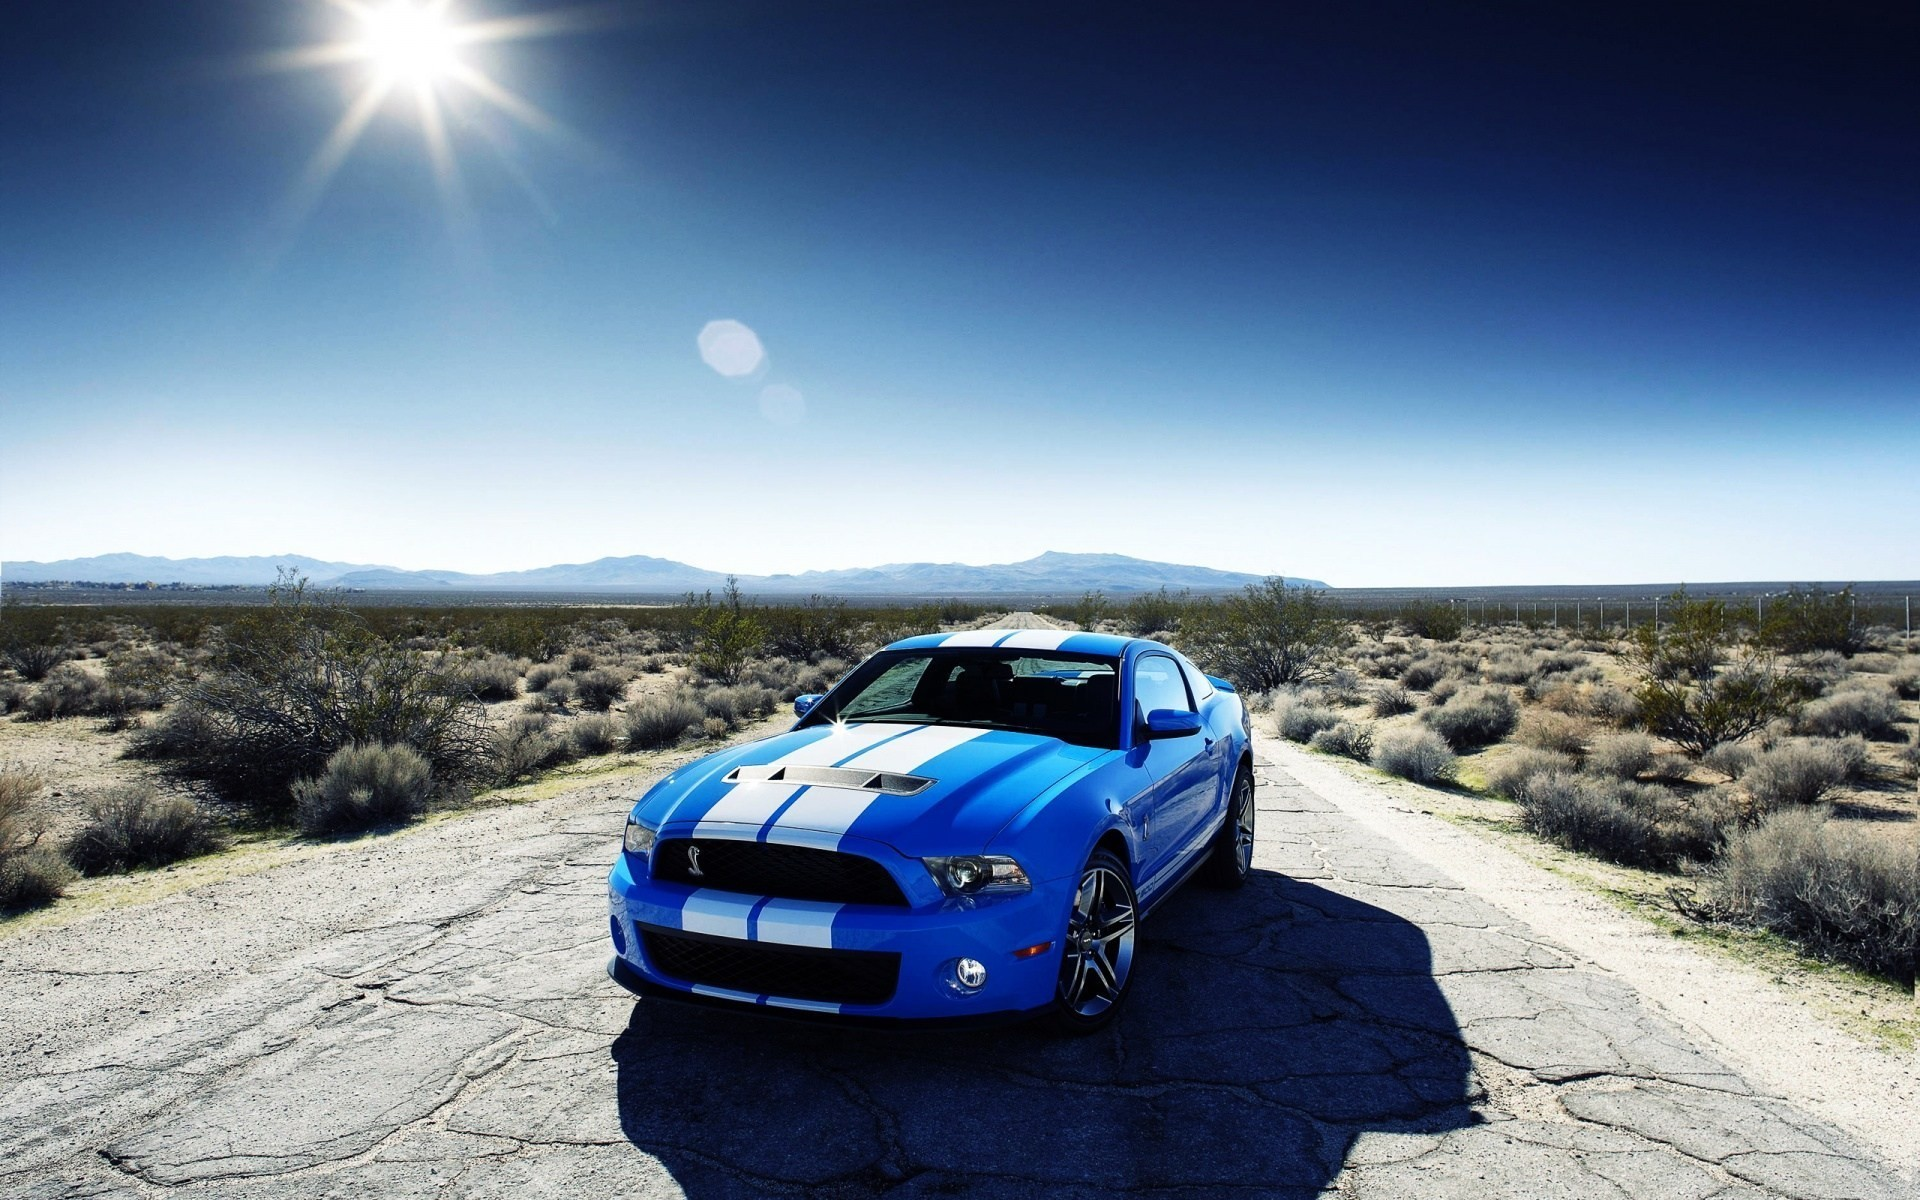 Res: 1920x1200, Ford Mustang Shelby Gt500 Wallpapers 11 1920 X 1200 Stmed Net Wallpaper Hd